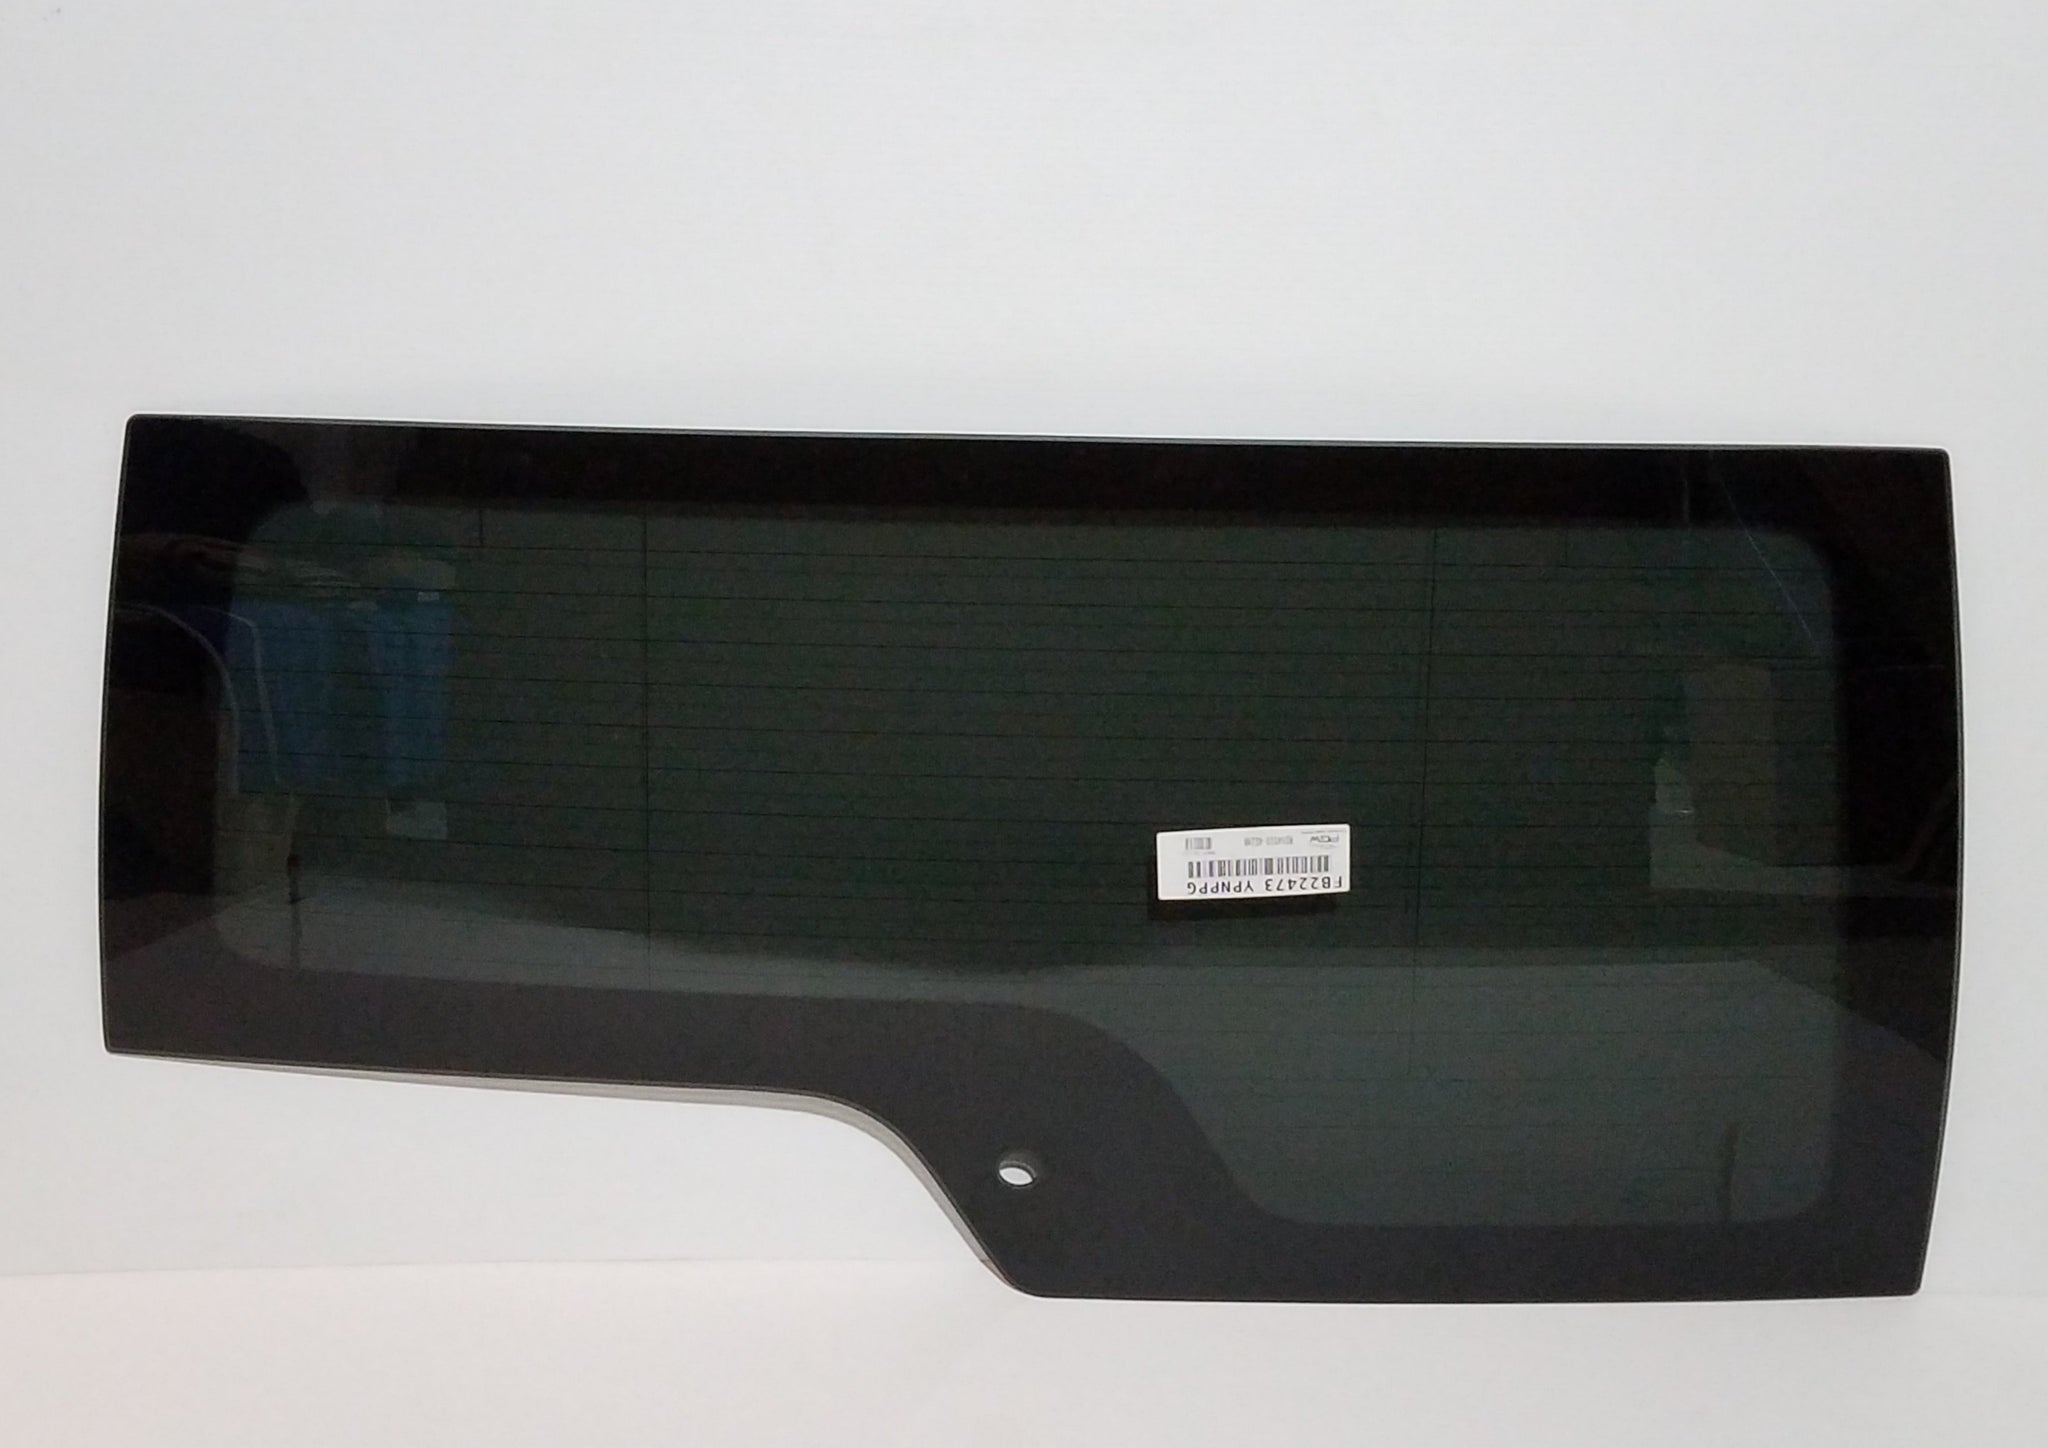 2005 - 2010 Land Rover LR4 & 2005-2009 LR3 Rear Back Glass, htd  w/ antenna